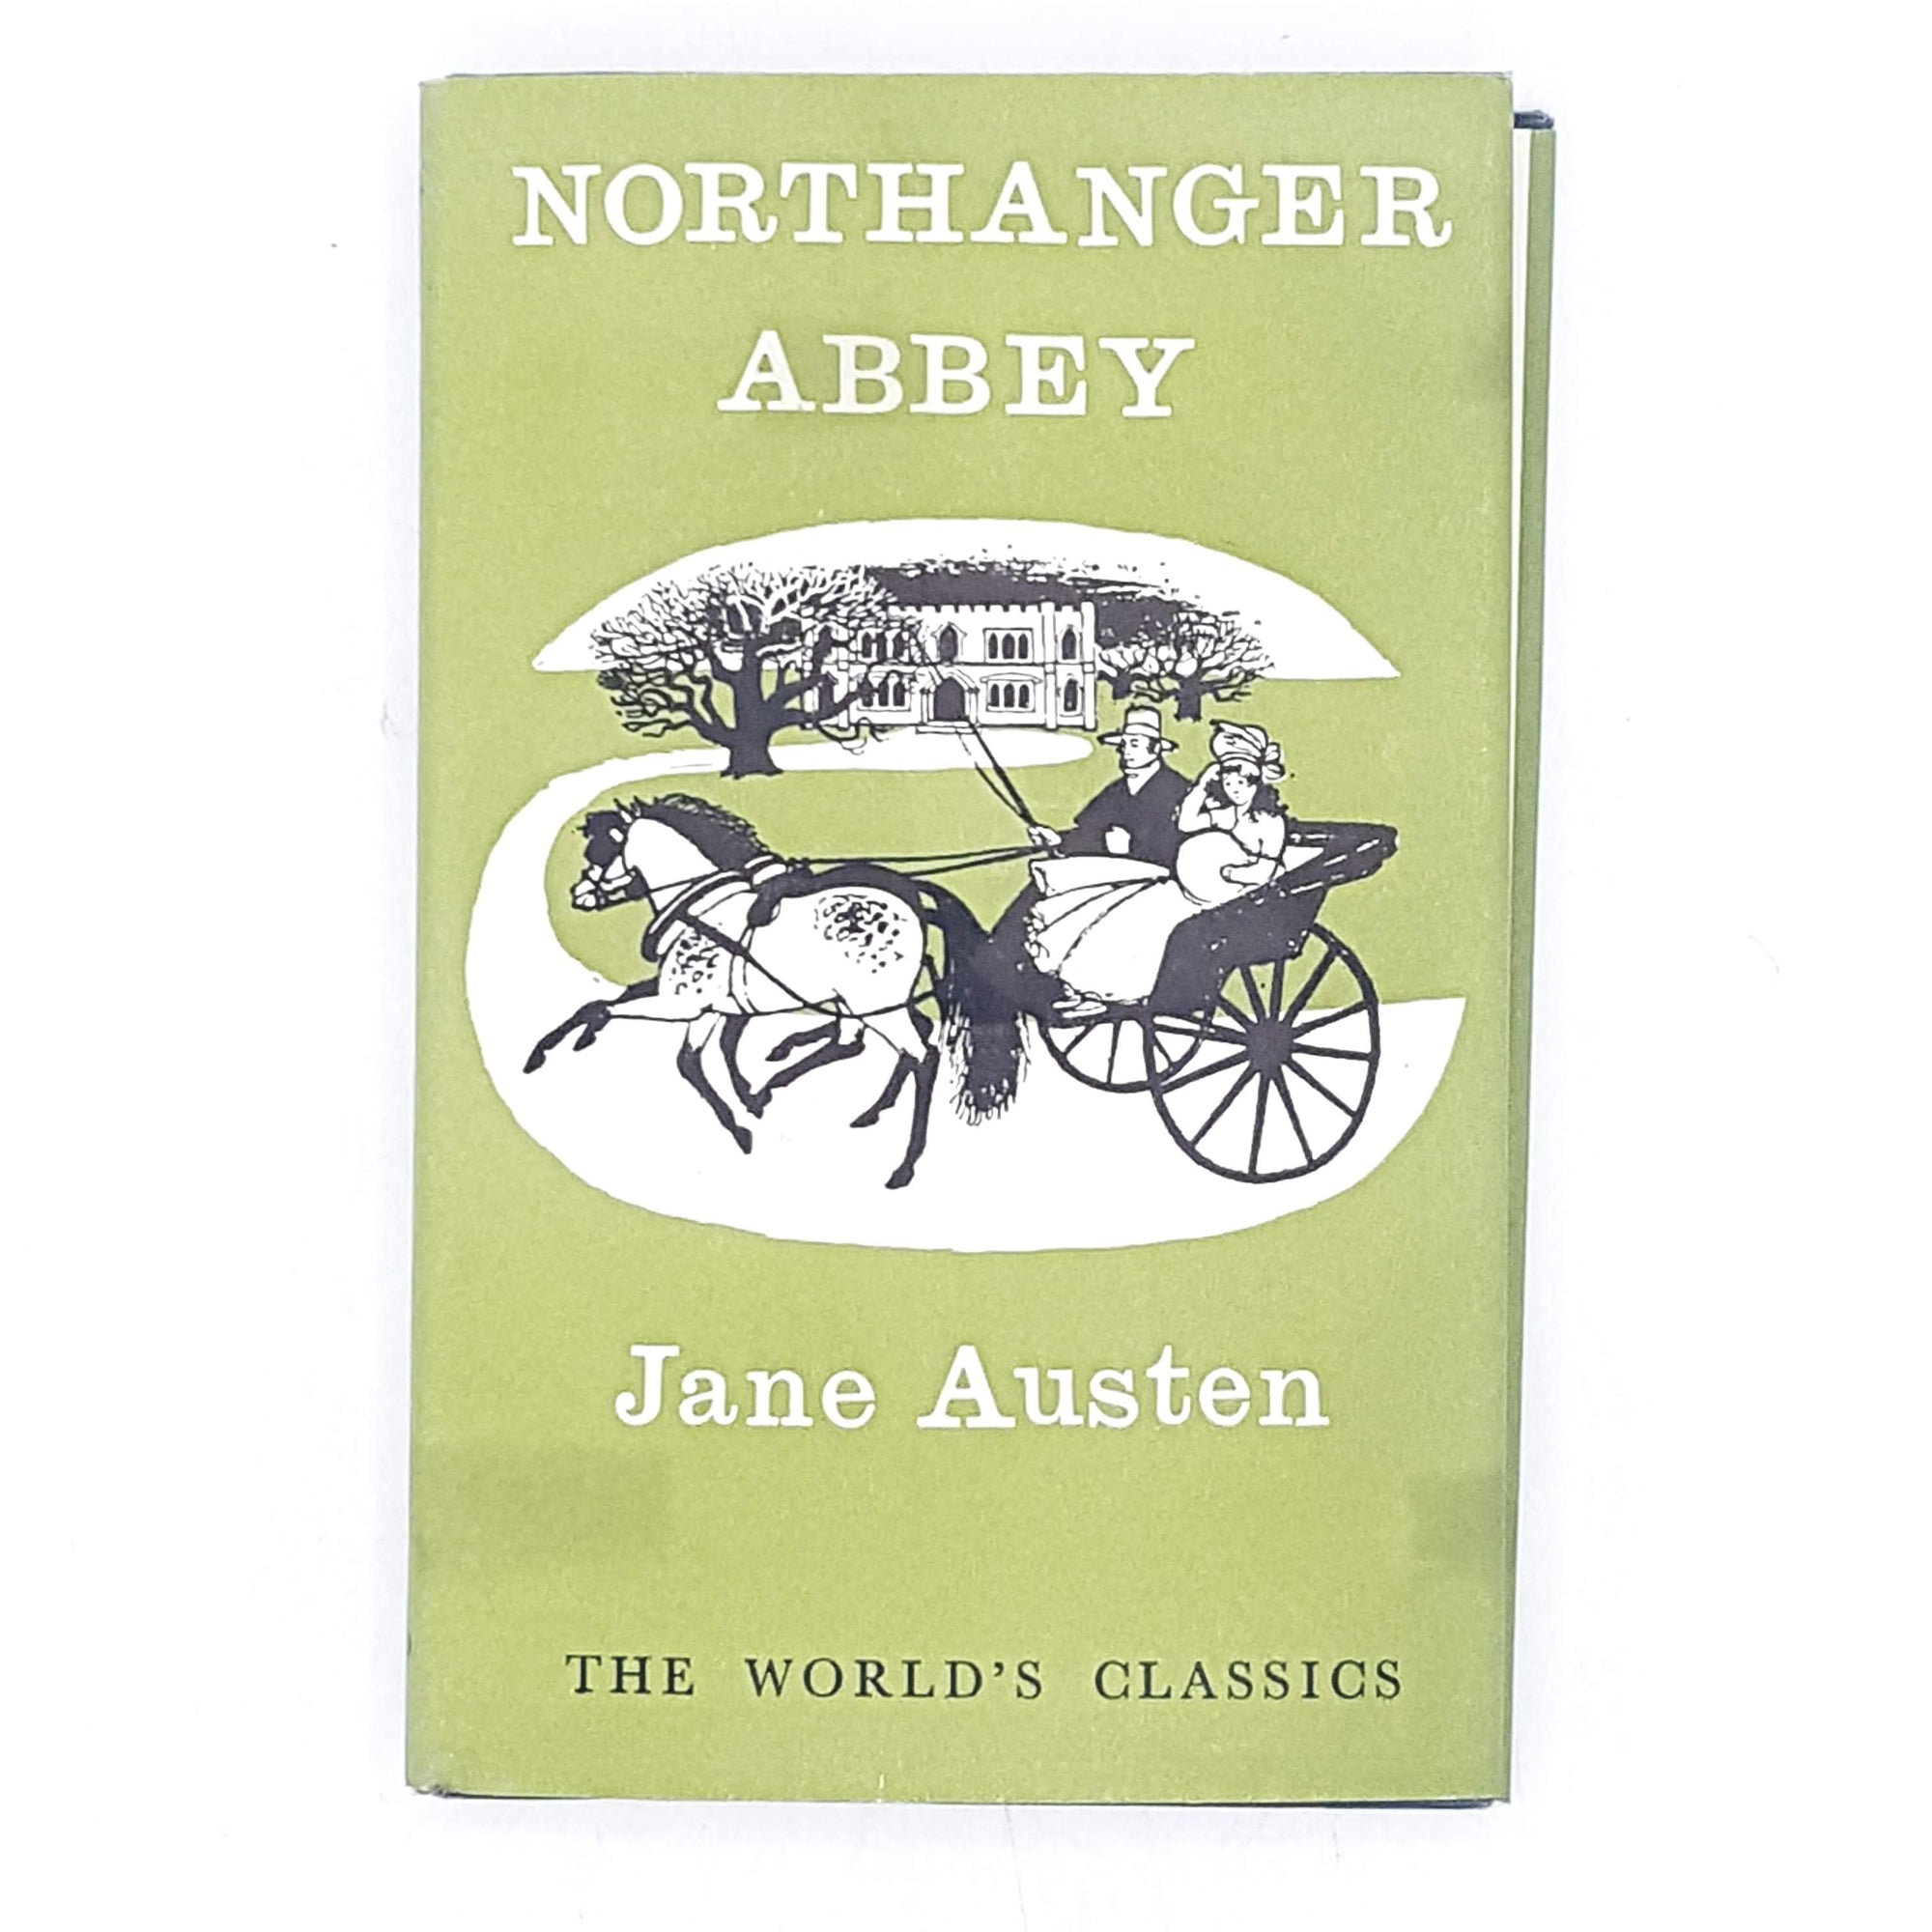 Jane Austen's Northanger Abbey 1965